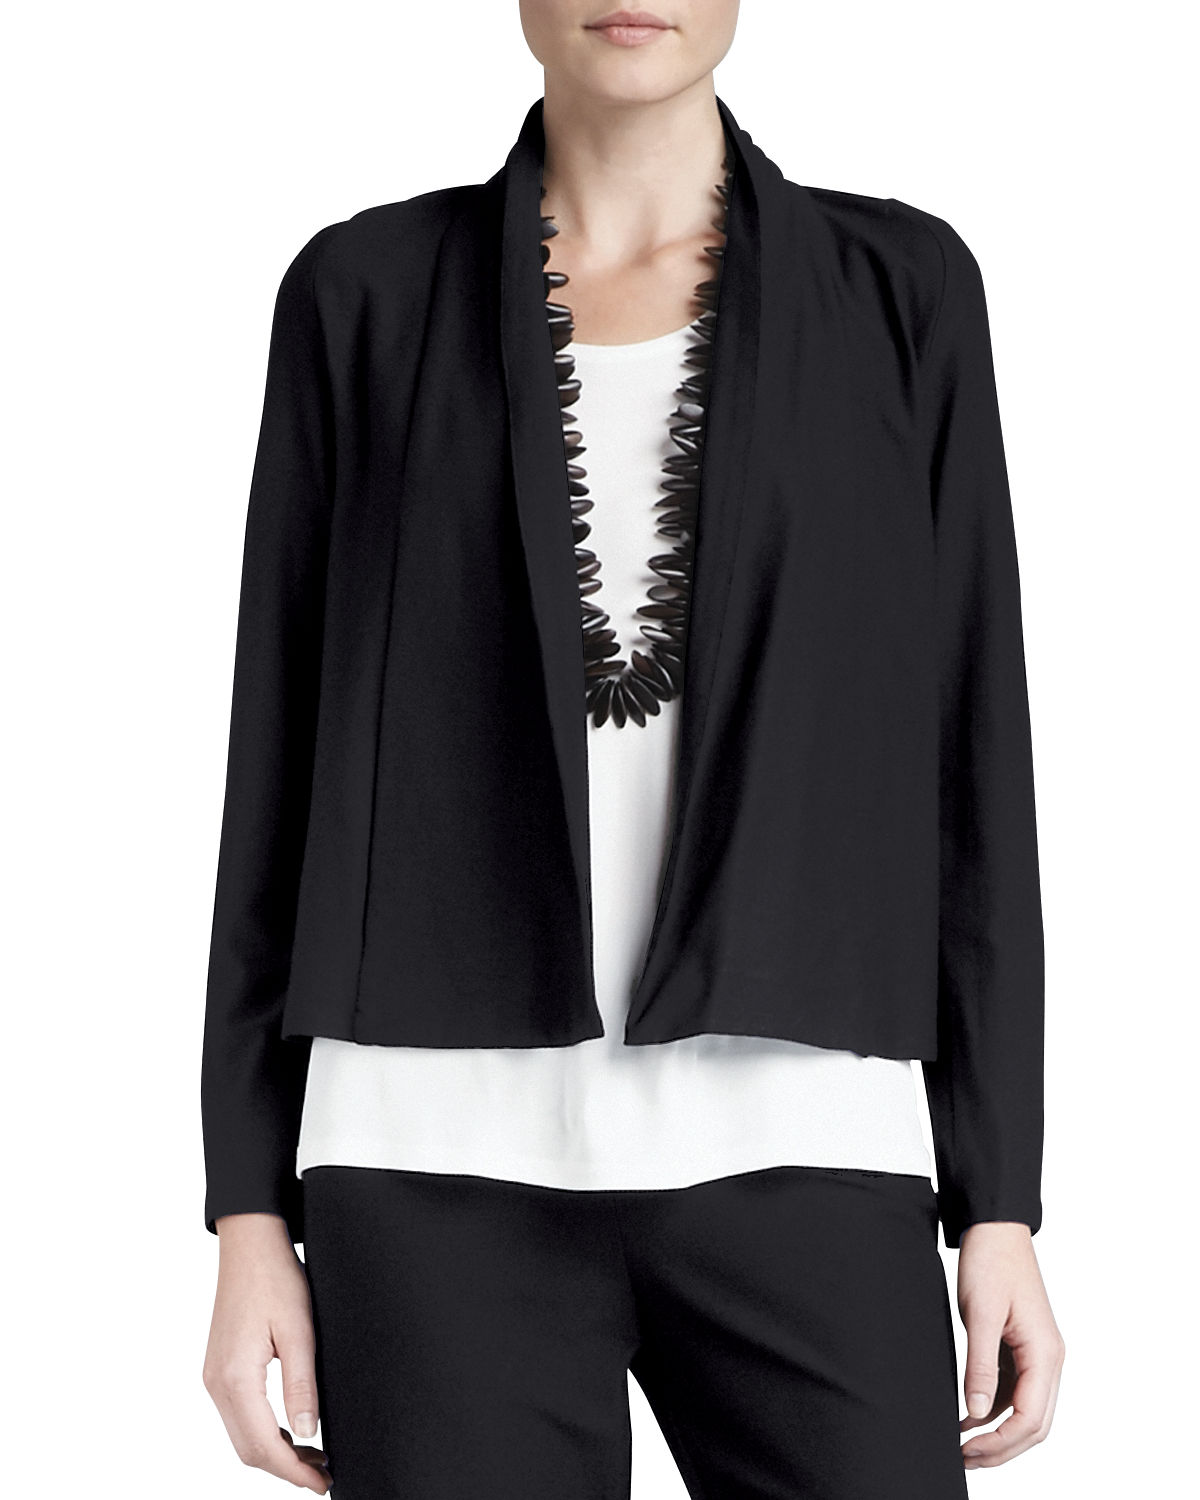 Washable Stretch Crepe Short Jacket by Eileen Fisher